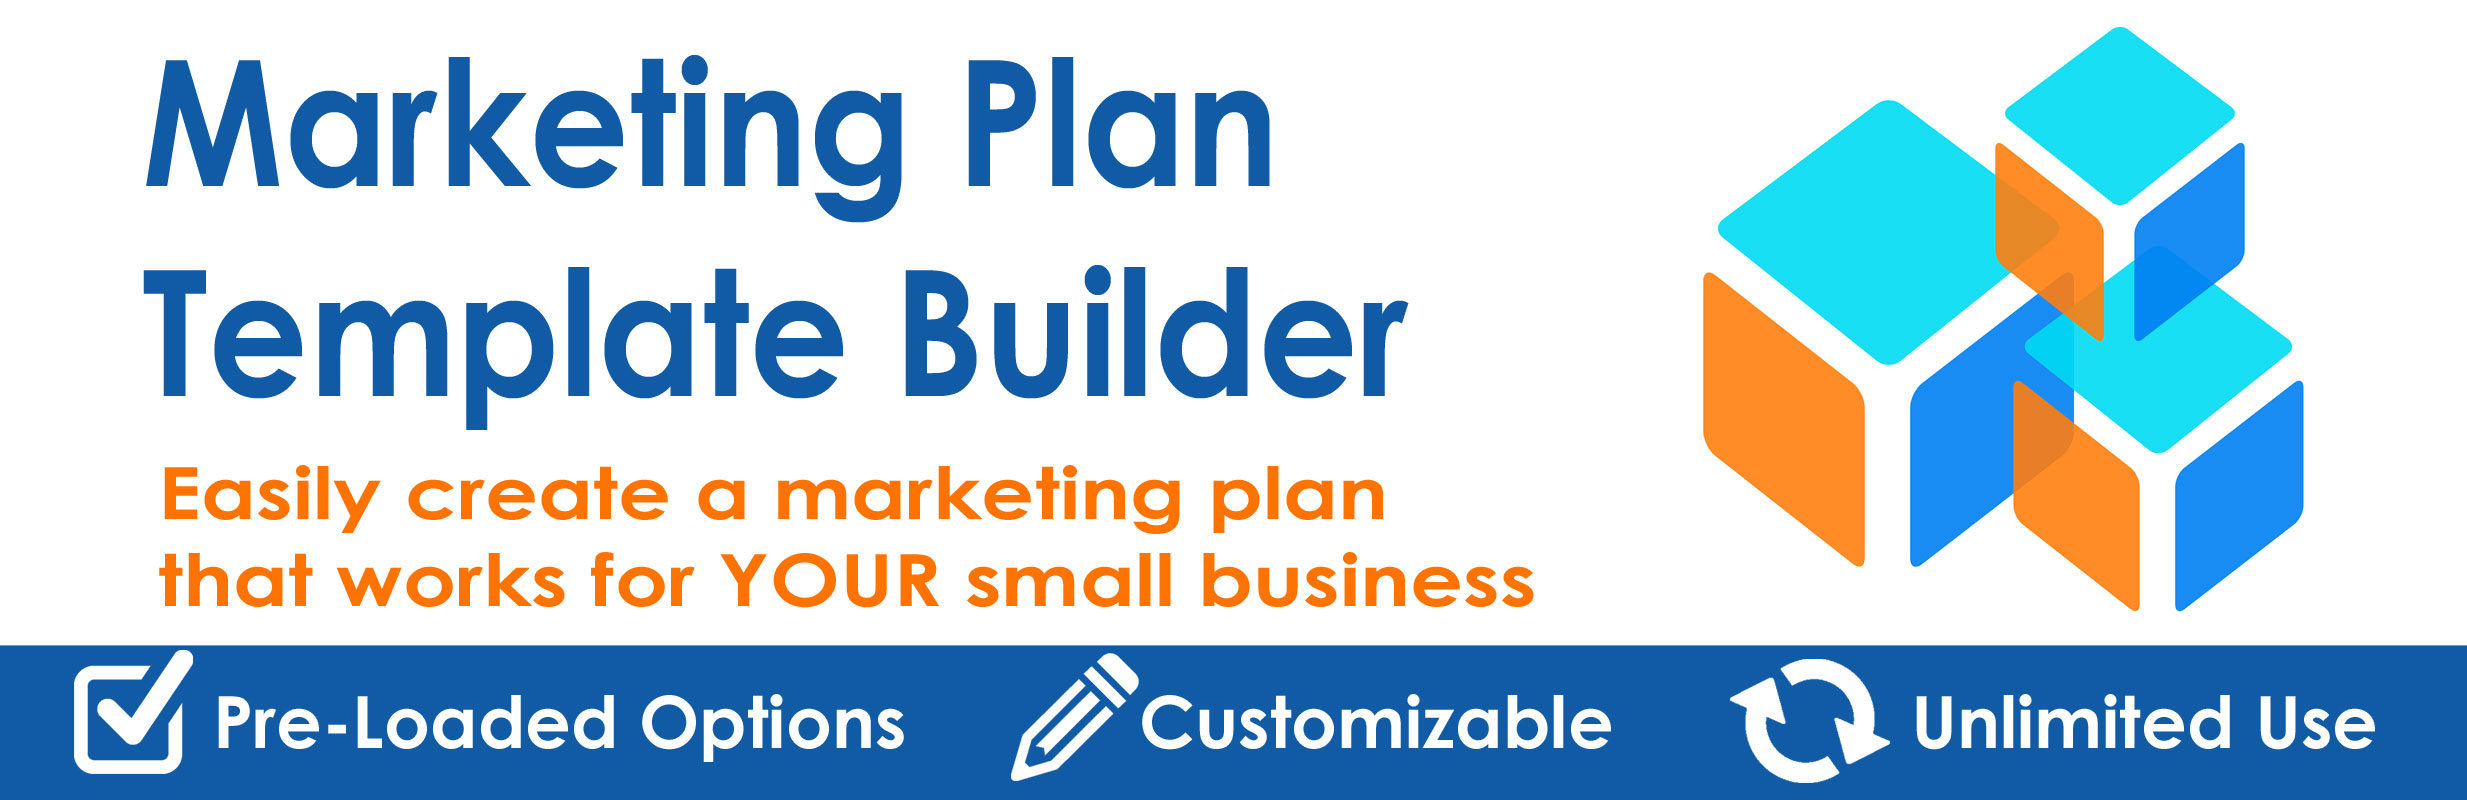 Marketing to builders for Solstice plus plan one